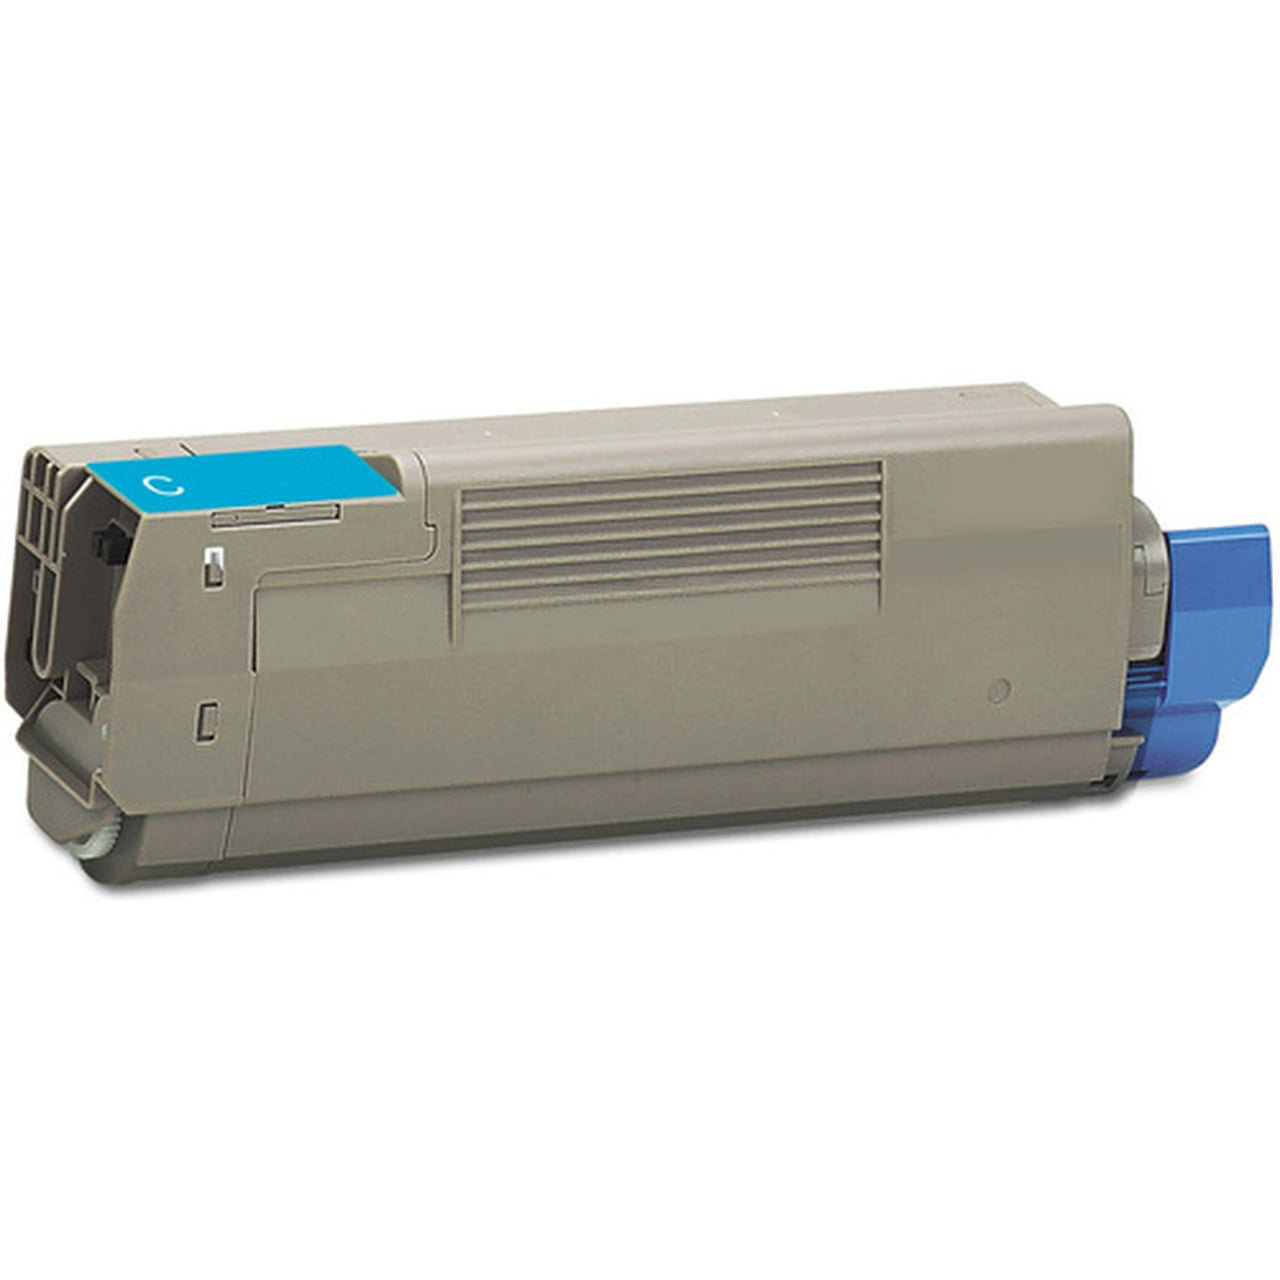 44059111 Toner Cartridge - Okidata Remanufactured (Cyan)